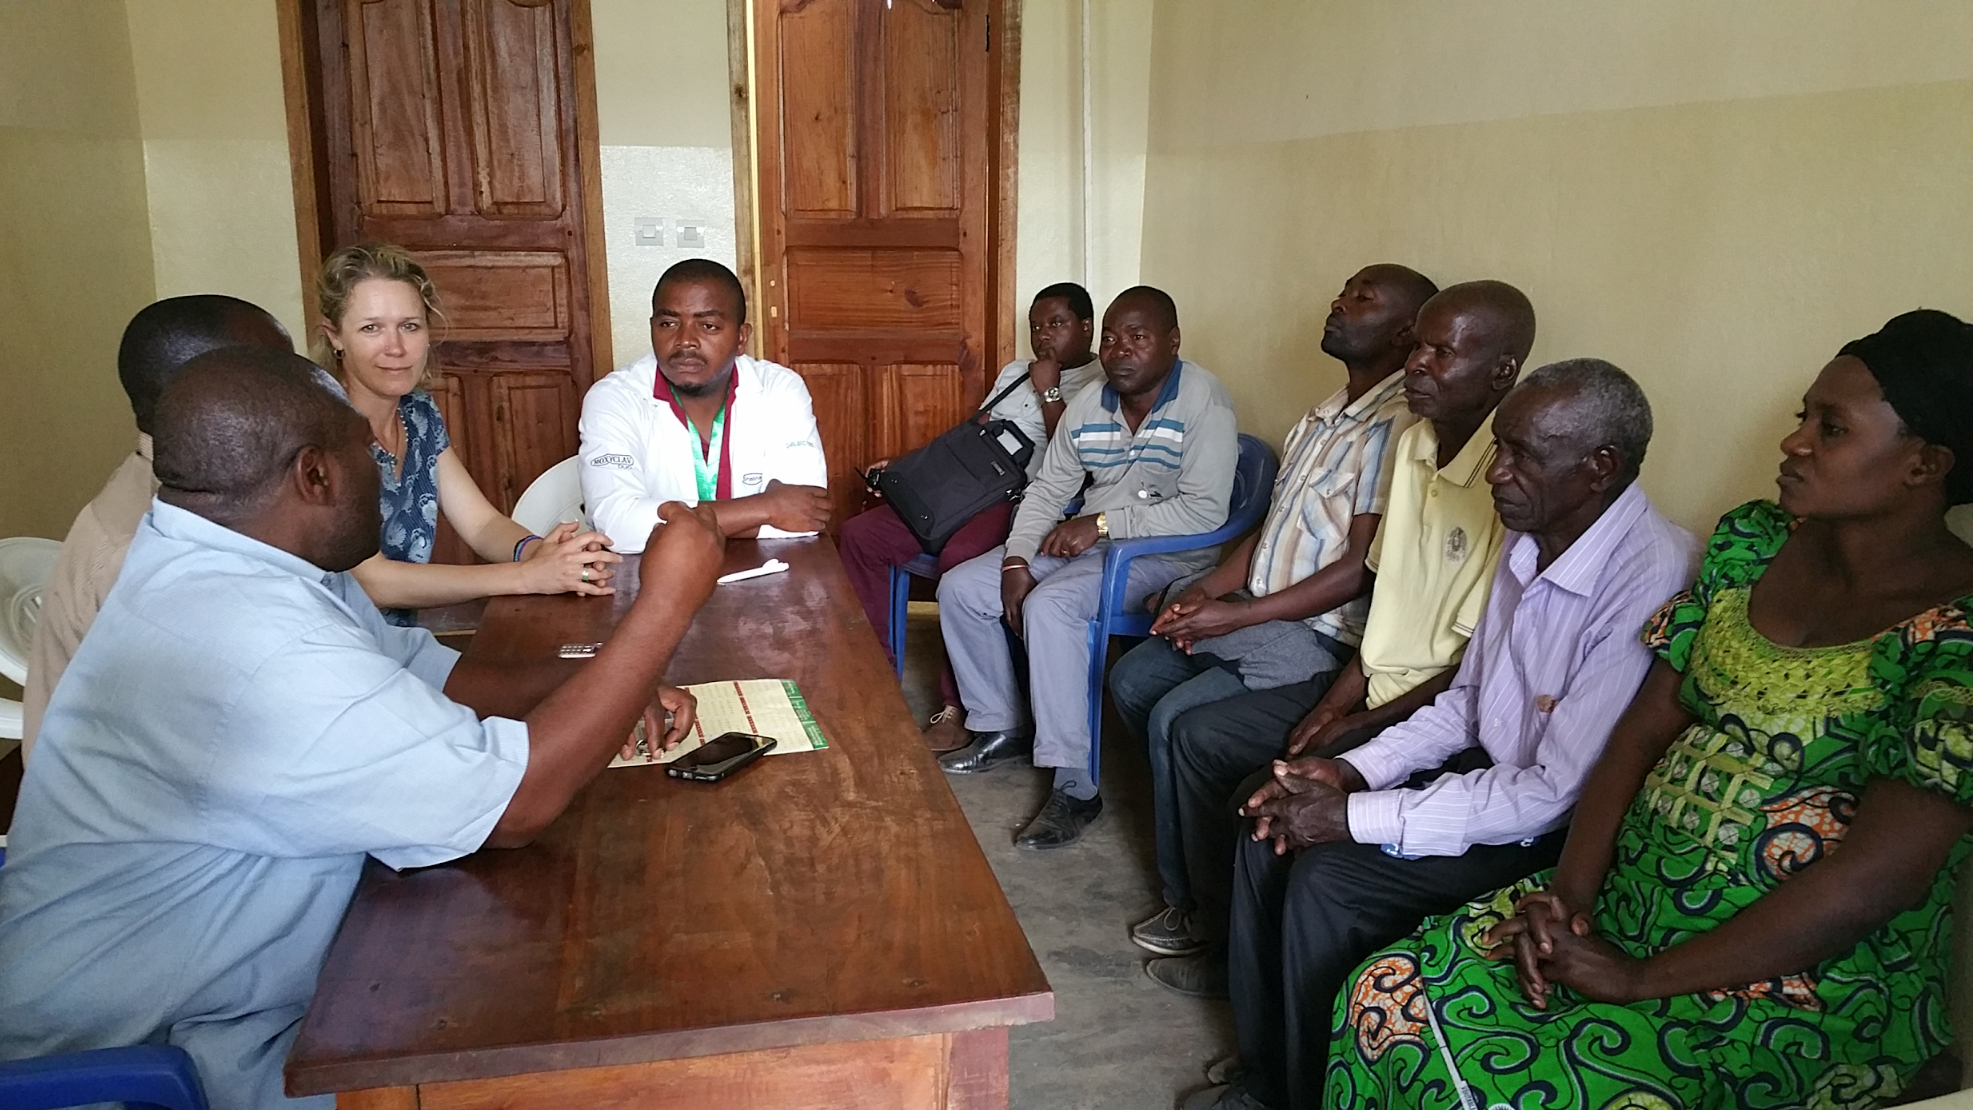 Bulenga Clinic staff meet with Beth Ann and representatives of SOPACDI to talk about the clinic and needs of the community